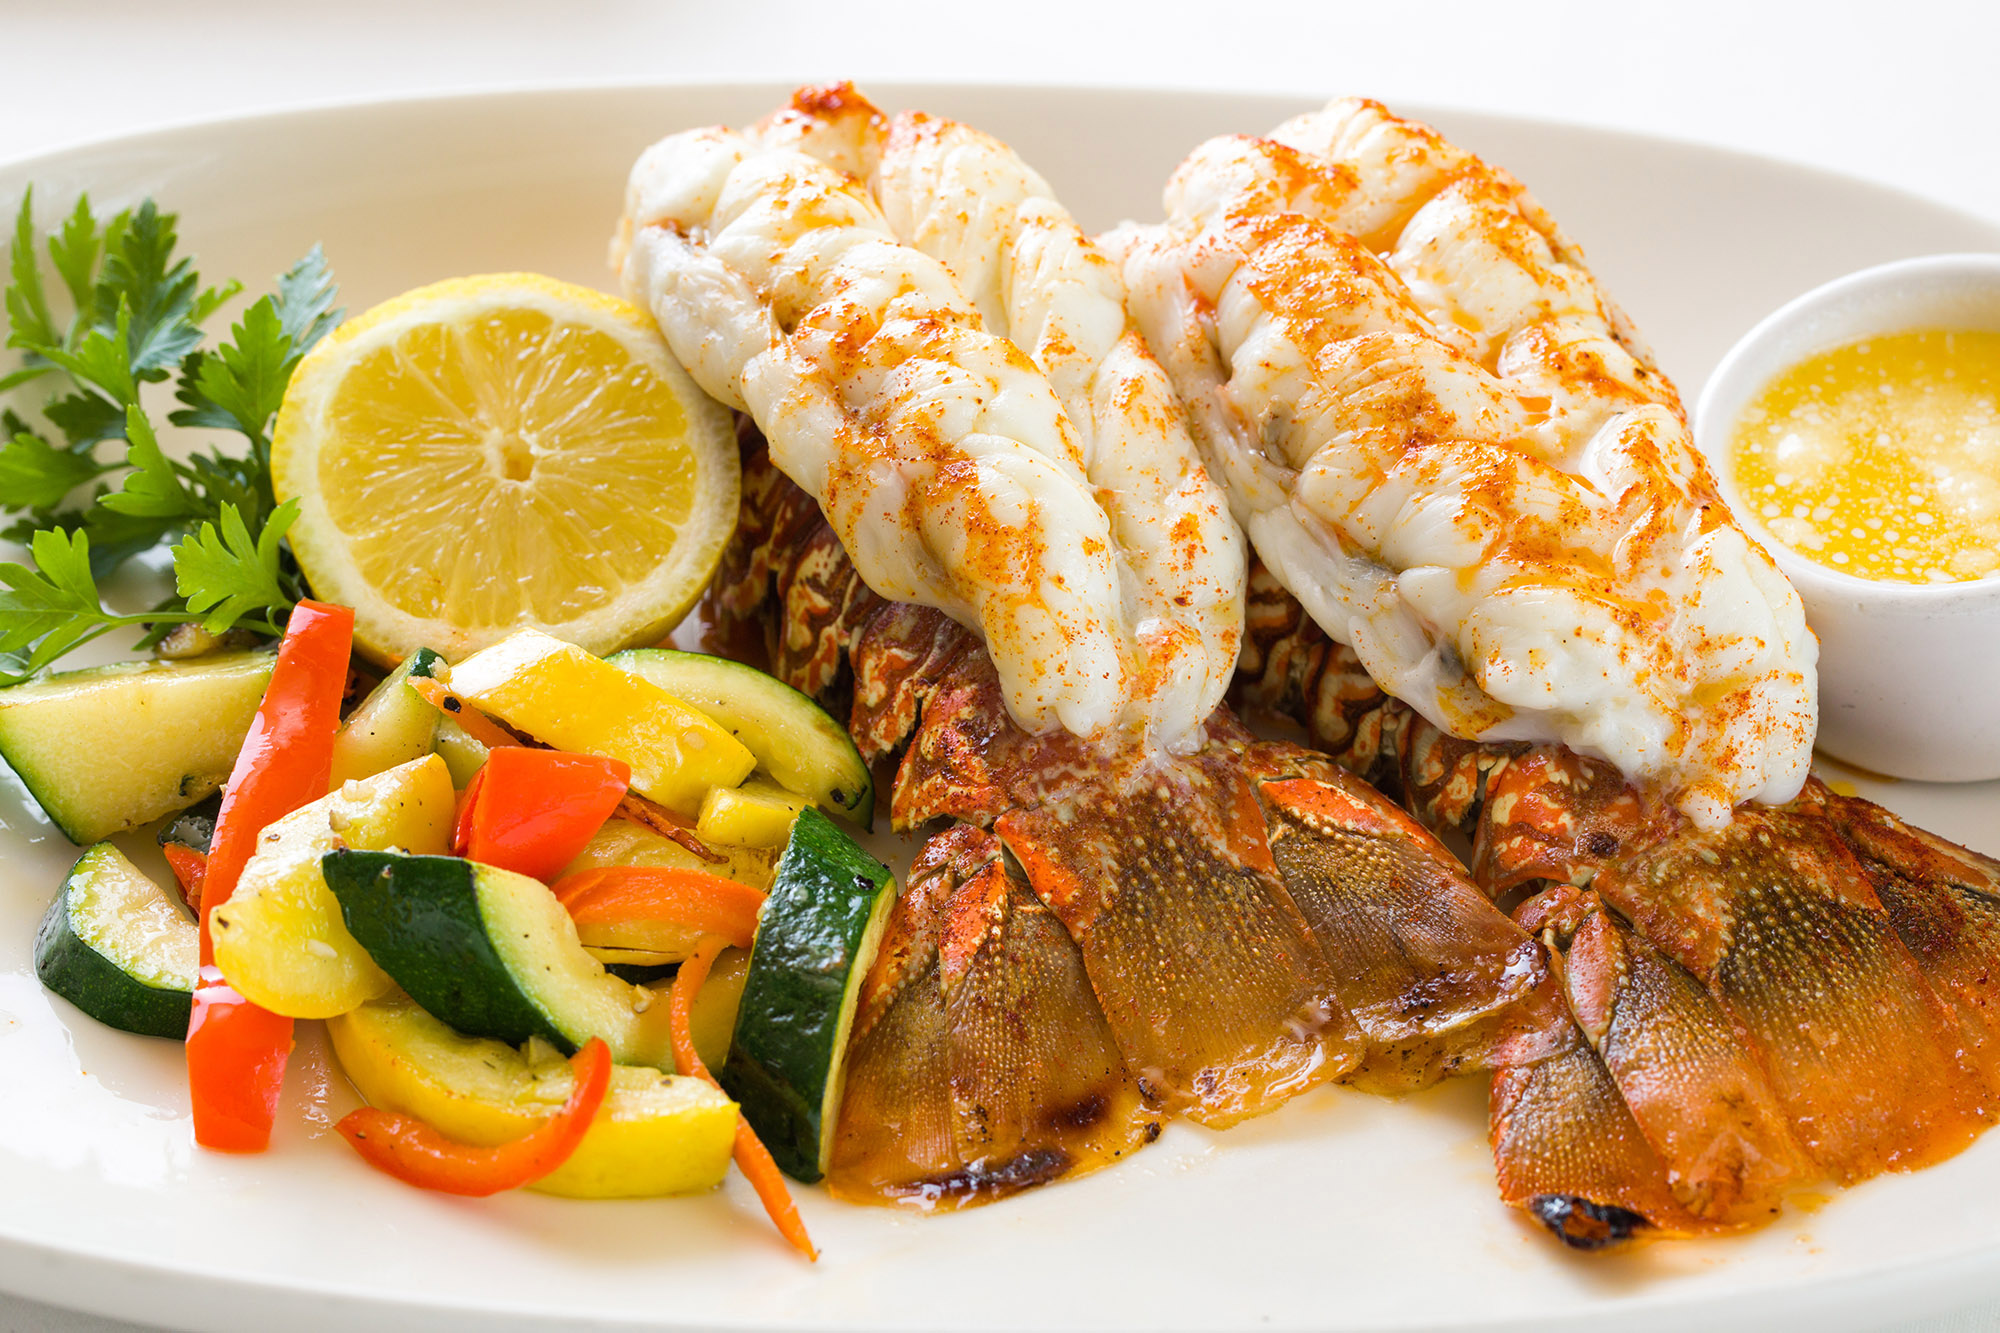 California Spiny Lobster VS. Maine Lobster VS. South African Lobster Tails